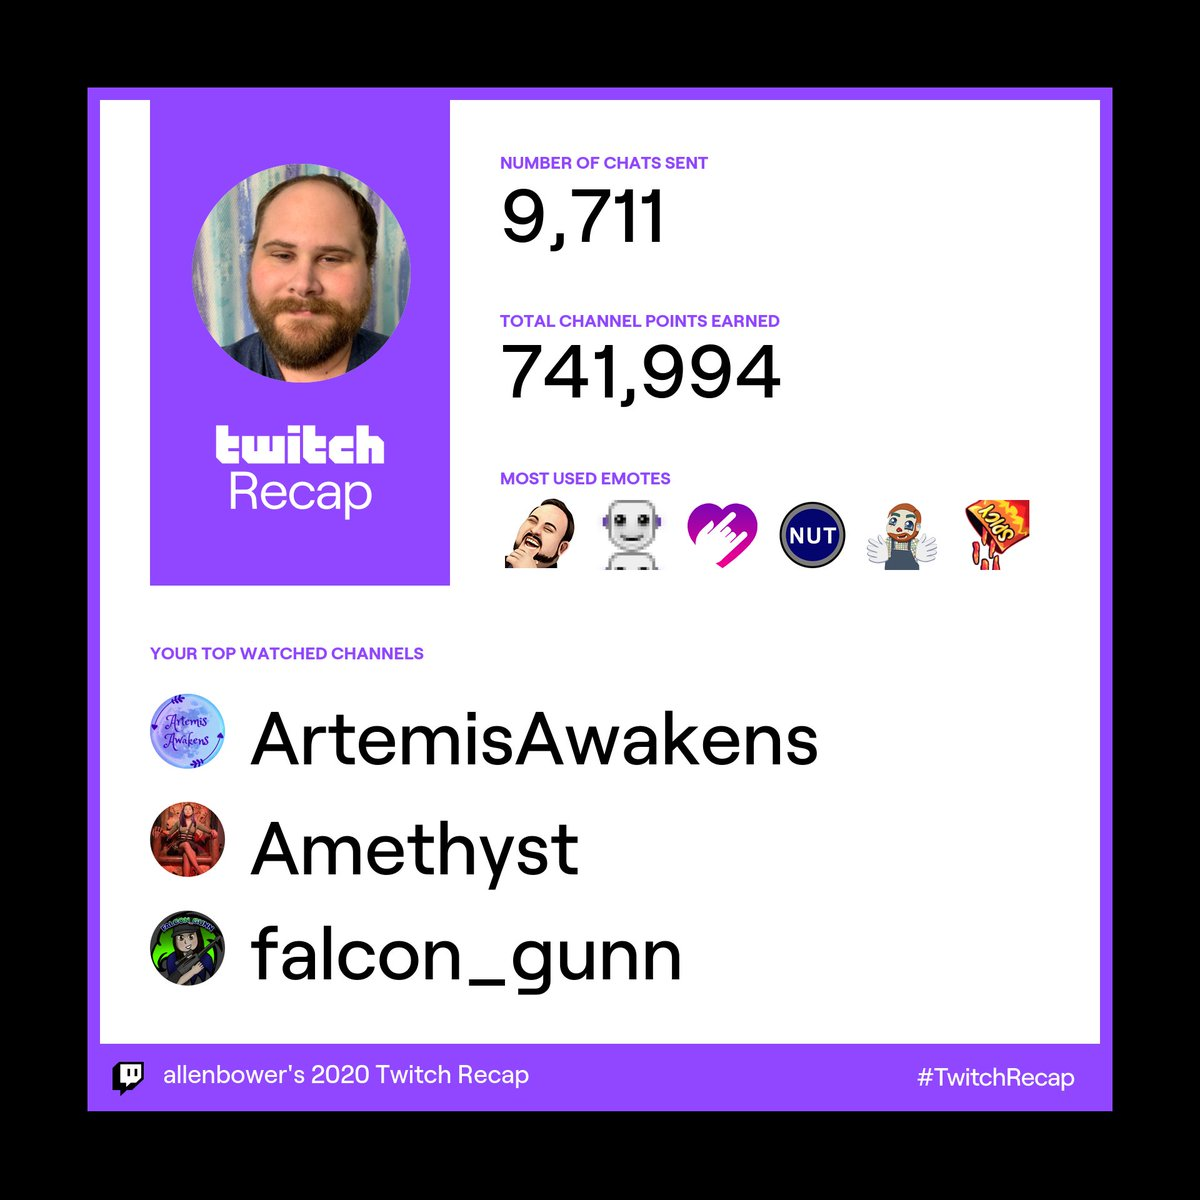 My Twitch 2020 recap. That's a lot of channel points earned! @ArtemisAwakens @itsAmethystTV @falcon_gunn #TwitchRecap #TwitchRecap2020 (emotes from @st3w91 @becky_is_cools @orange_u_gladd and @LinaAMadrid )